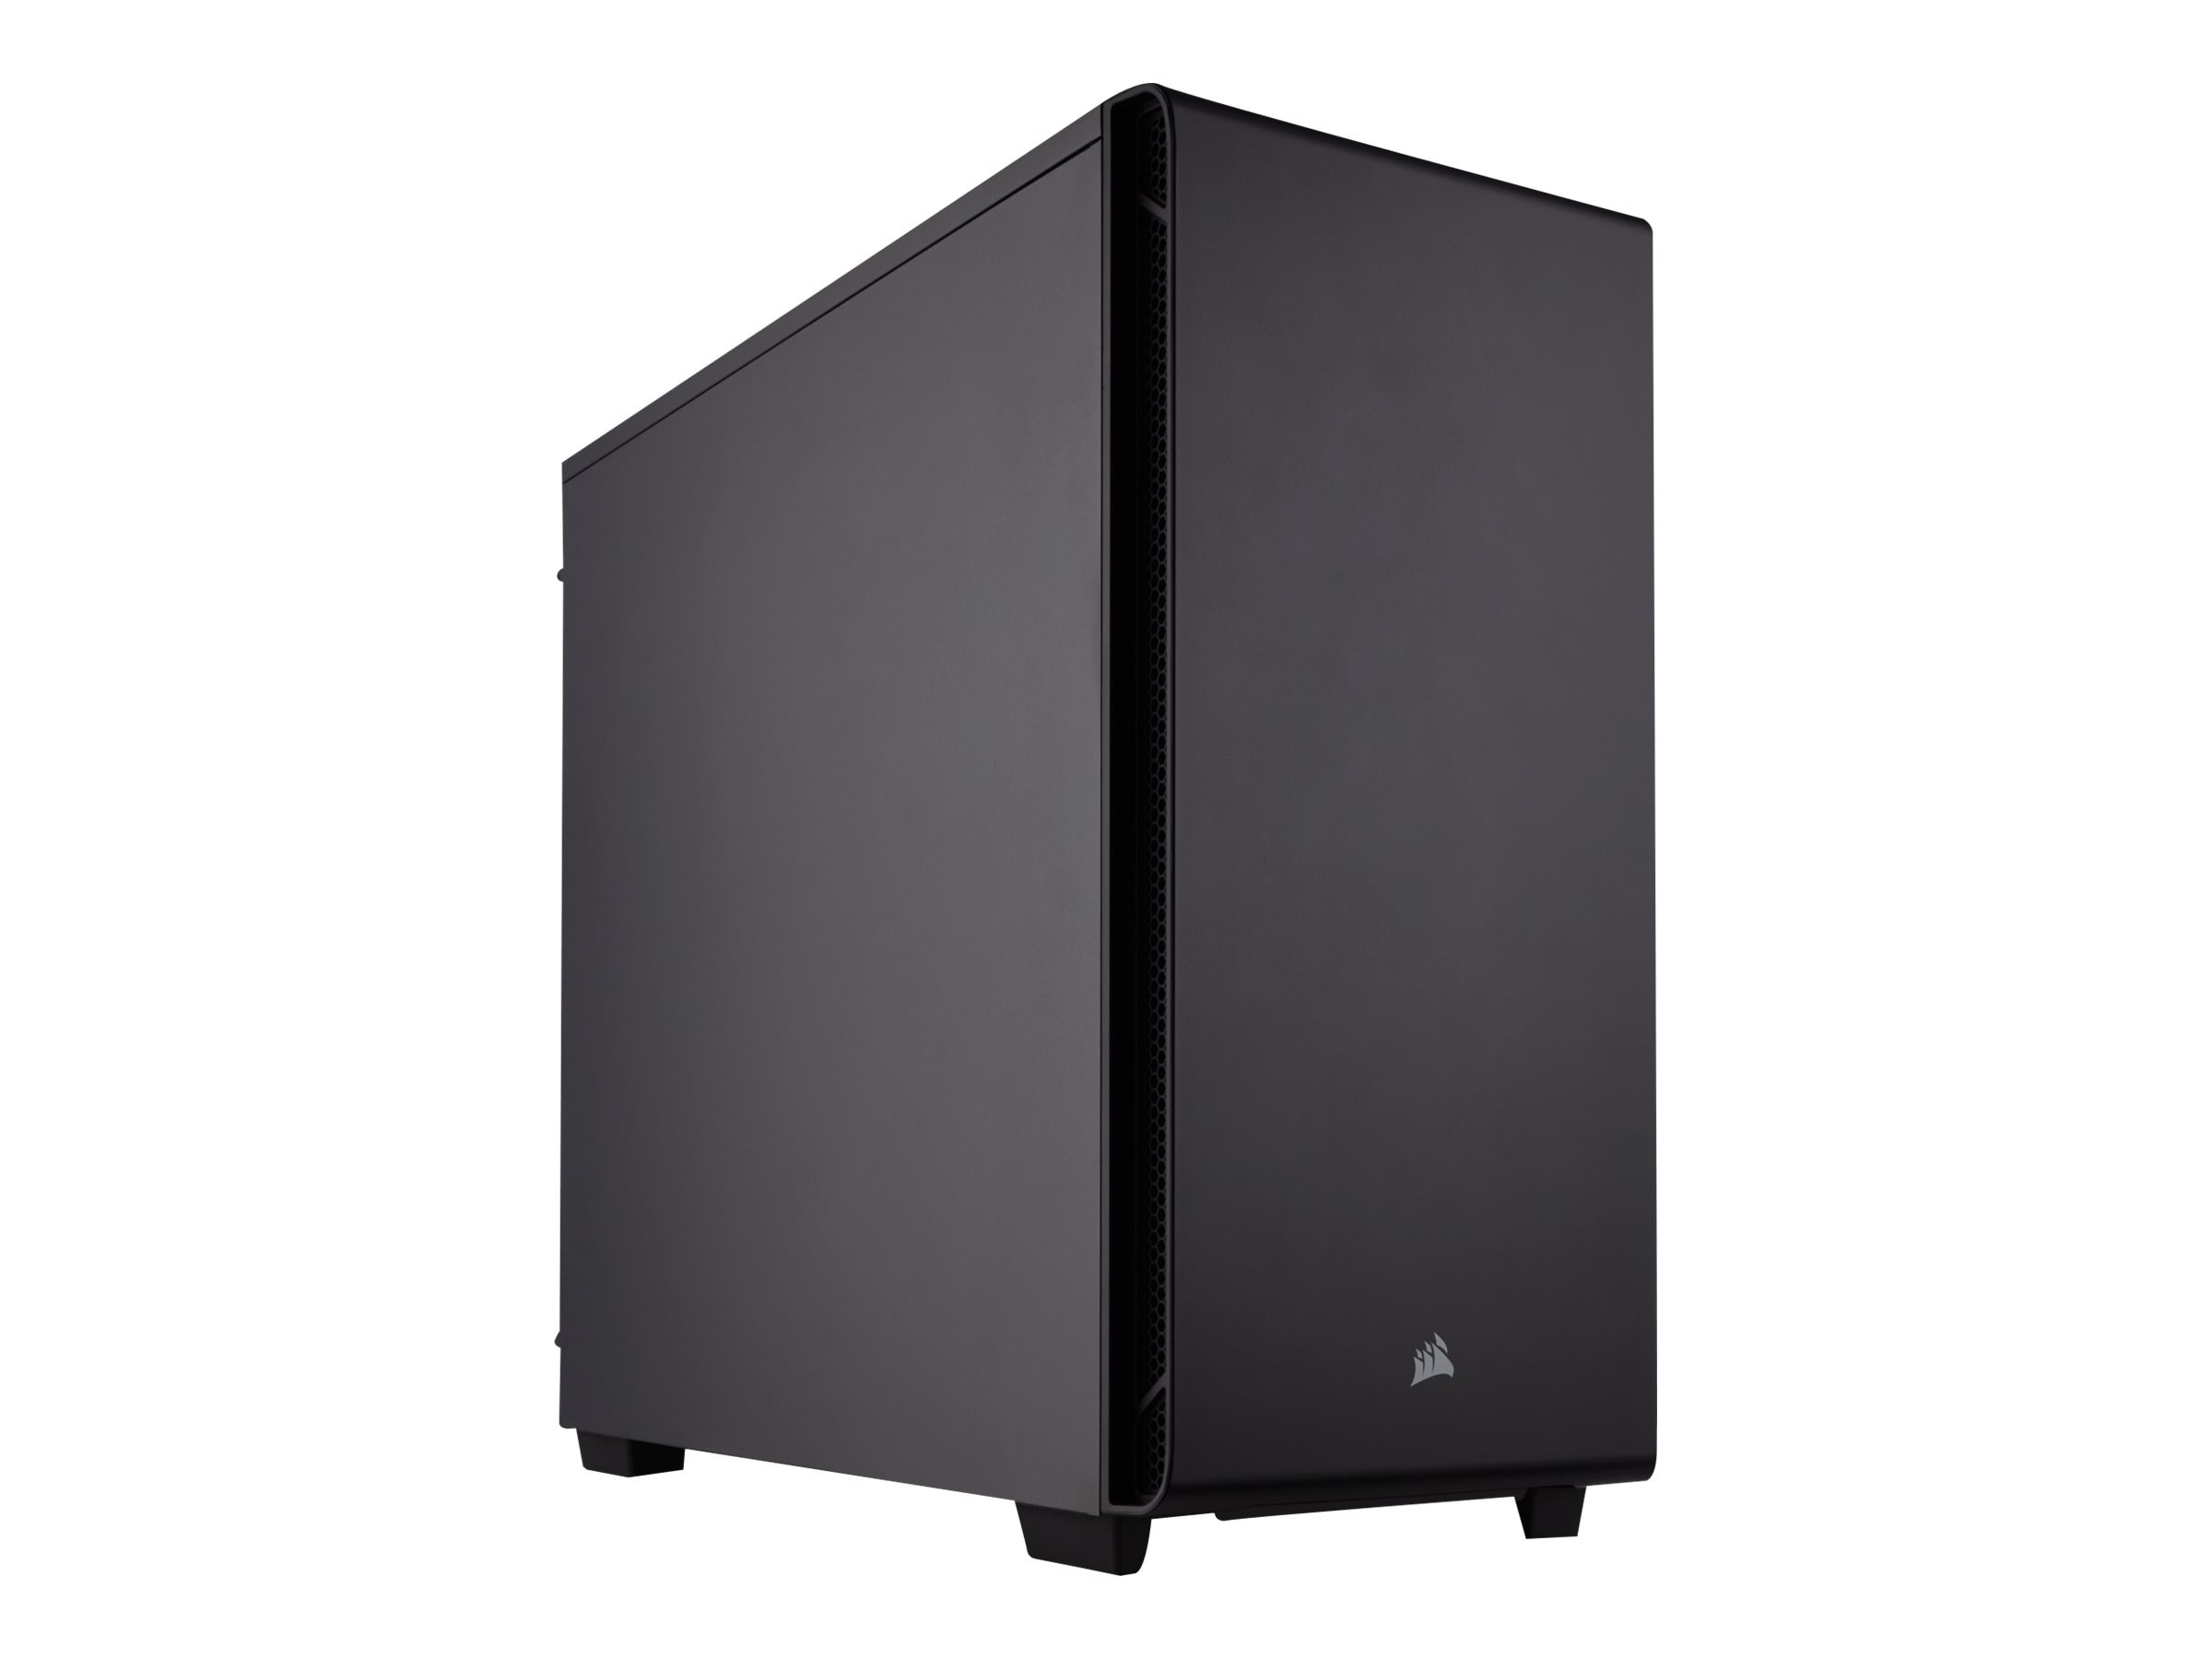 Corsair Chassis, Carbide 270R Mid Tower ATX